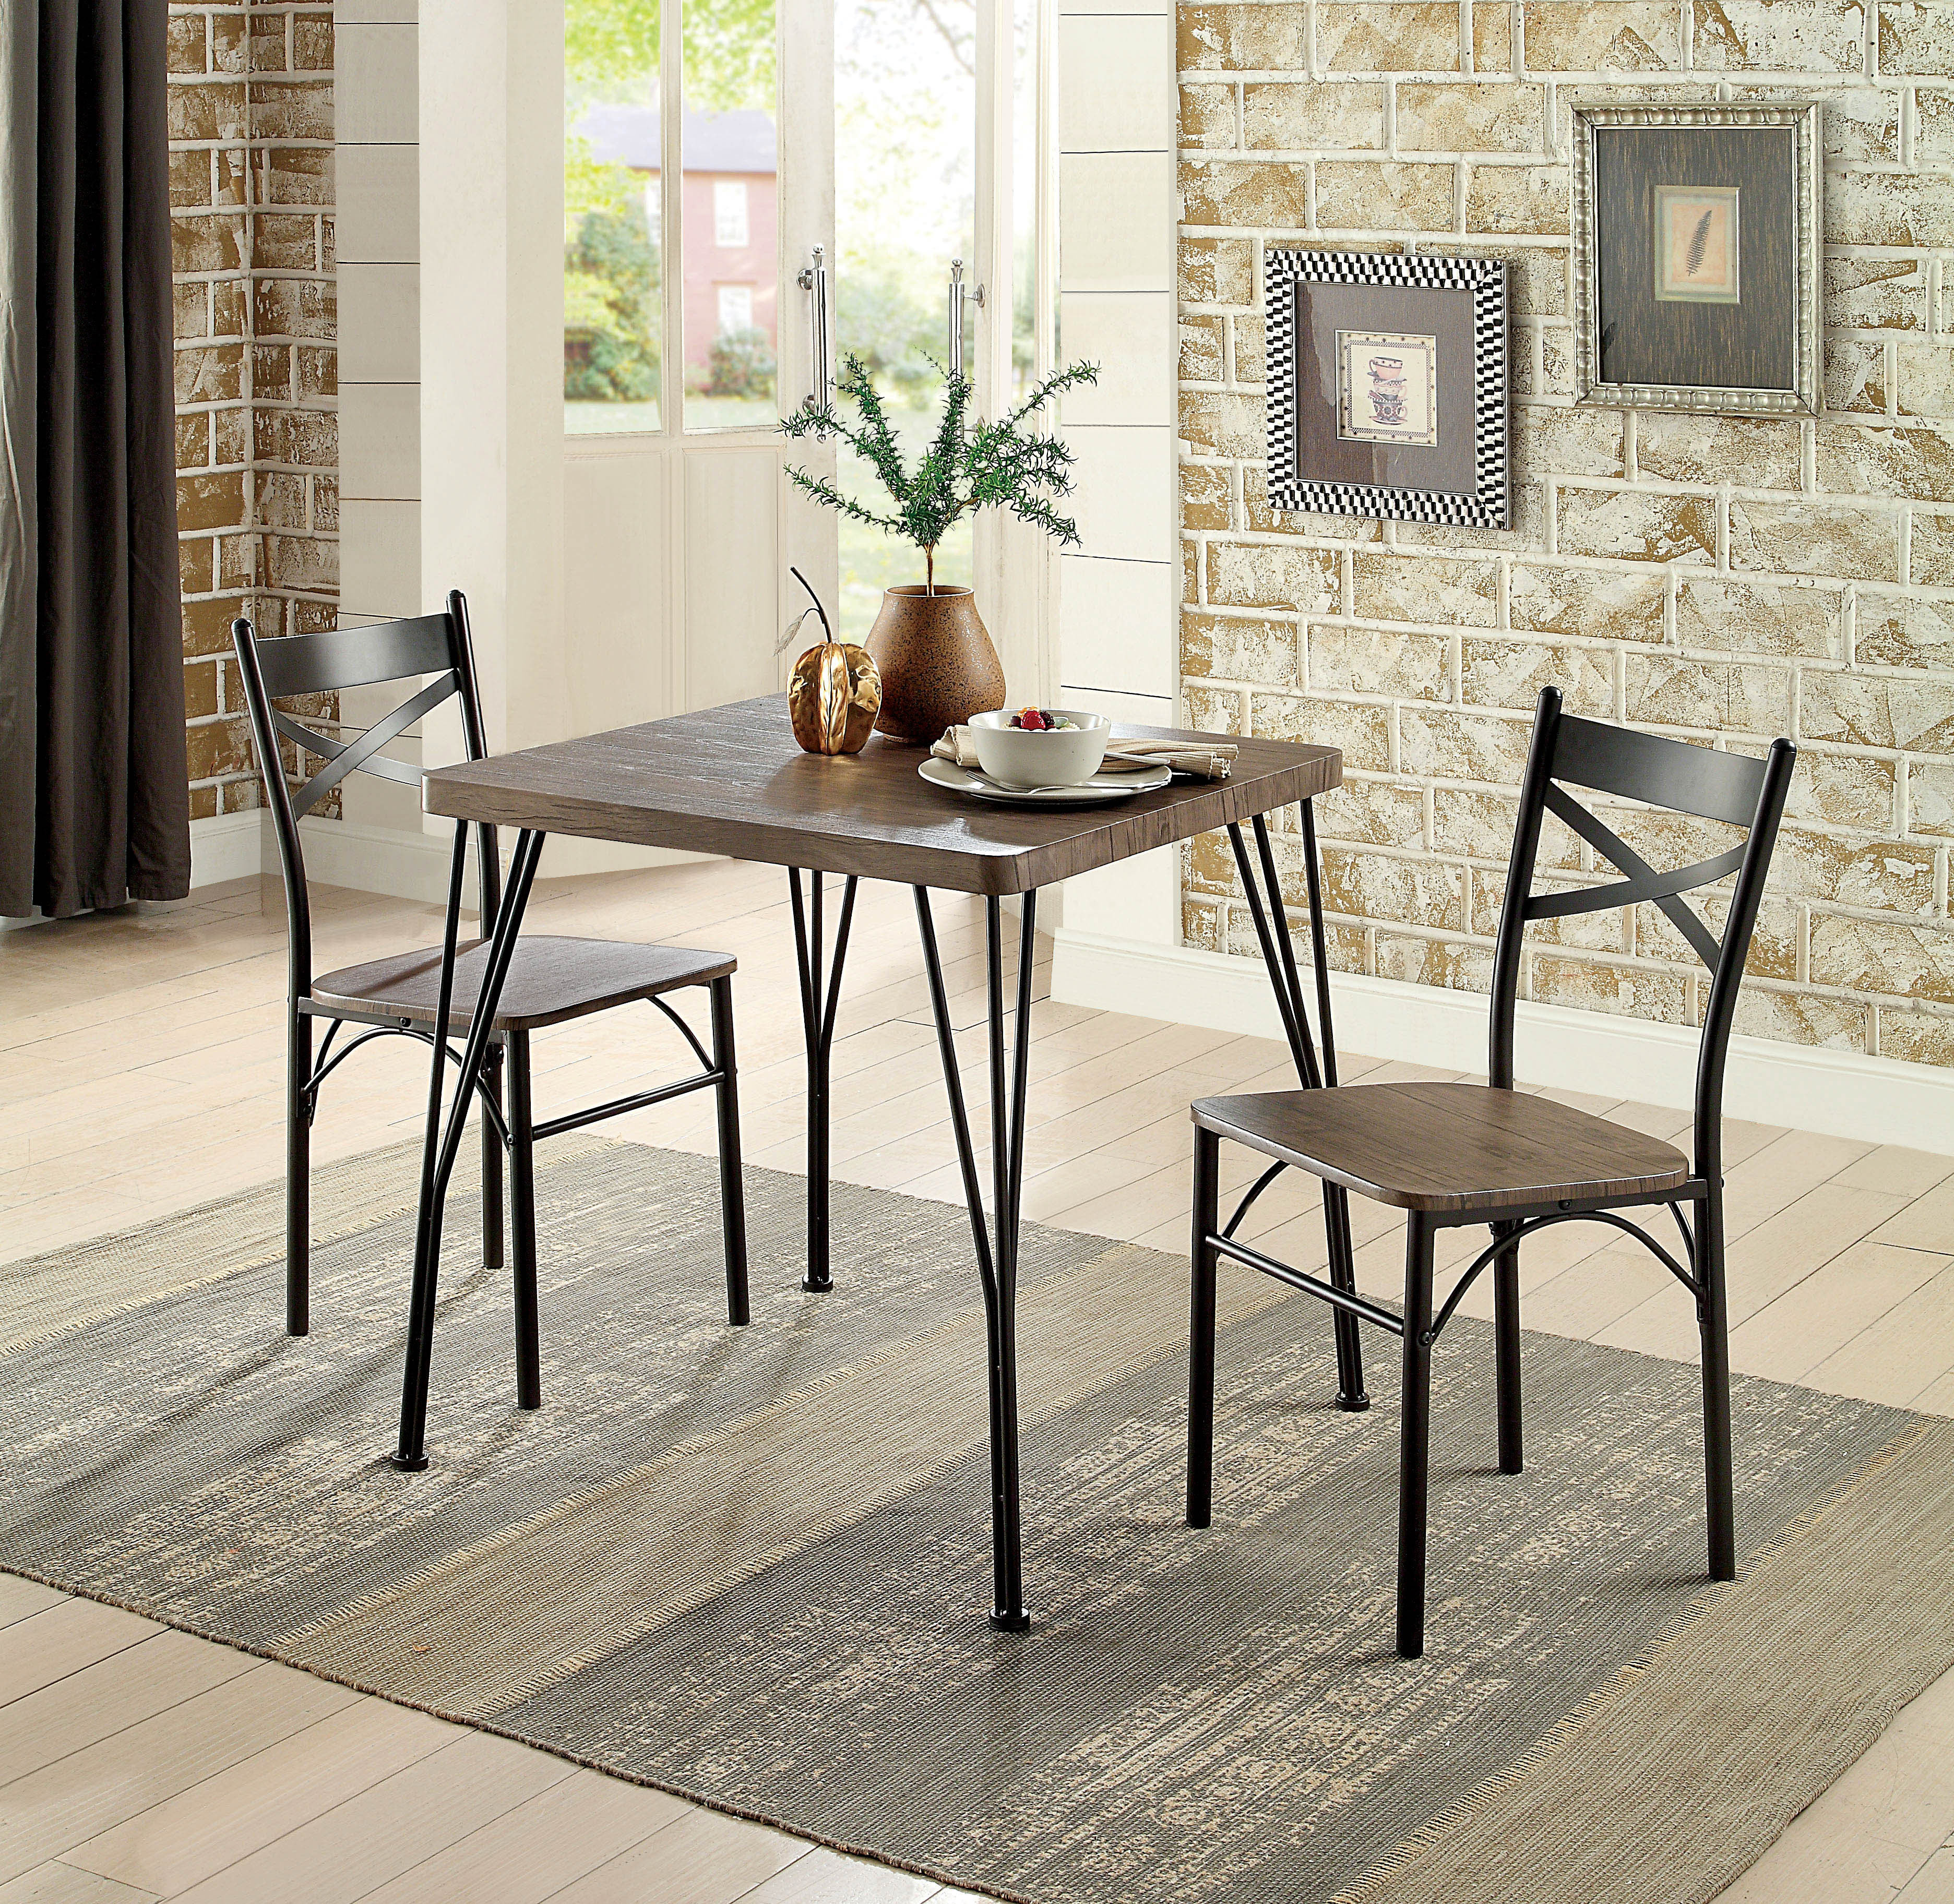 Guertin 3 Piece Dining Set Within Recent Telauges 5 Piece Dining Sets (View 20 of 20)